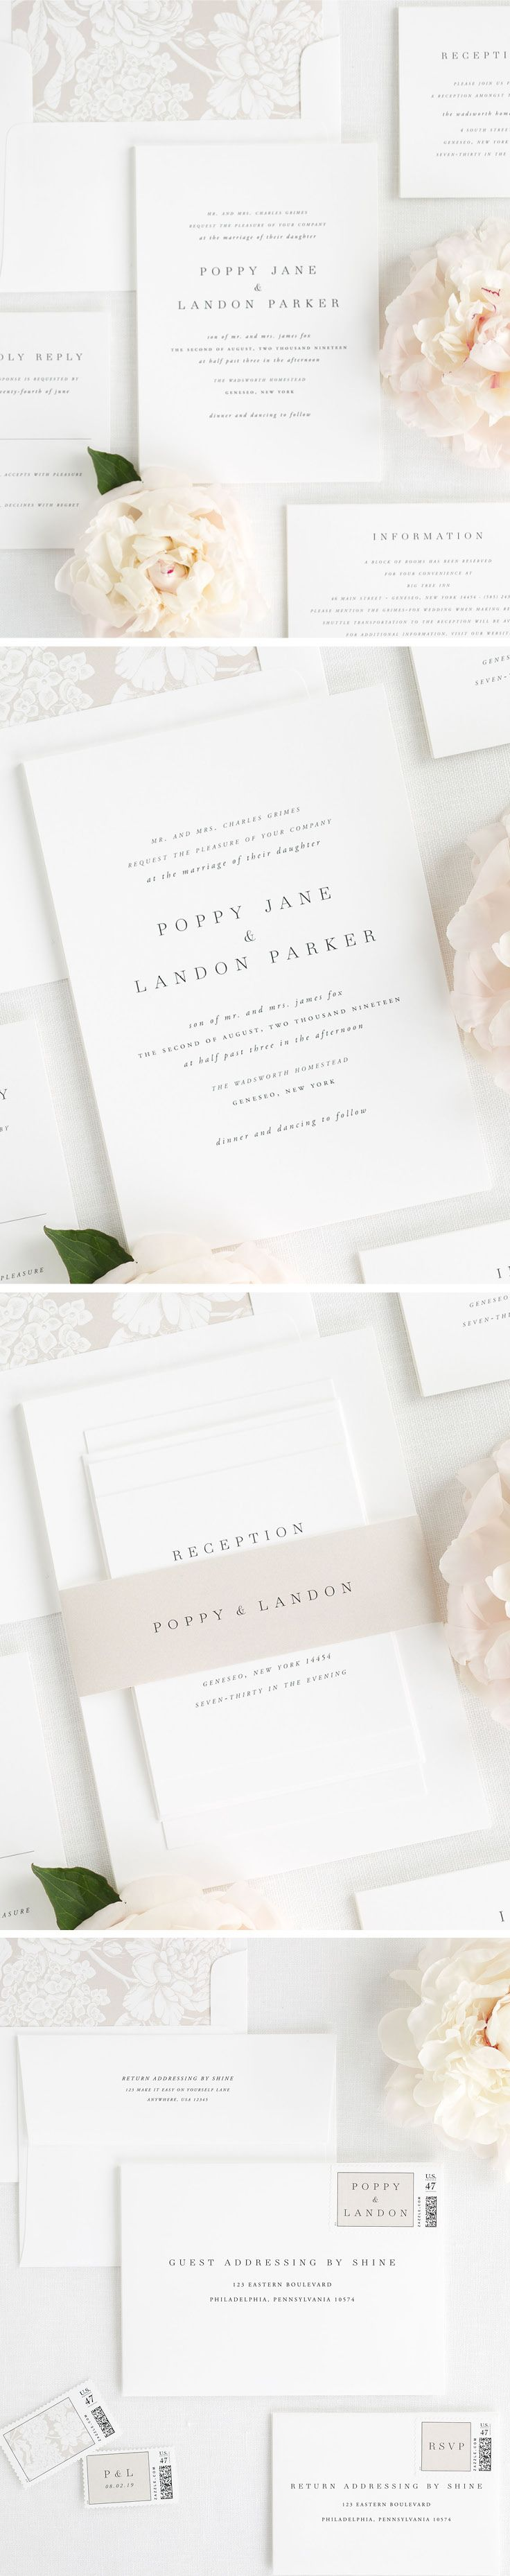 Meet Poppy, our simple and sophisticated wedding invitation design new for 2017. Poppy has a mix of classic and romantic elements which makes this design so gorgeous. Italics and small caps play a big role in creating such a simple design that is perfect suite for a timeless and classic wedding. Paired with a mocha floral envelope liner and a mocha belly band, I'm sure you will be just as obsessed with Poppy as we are. Create the wedding invitation of your dreams with Shine!